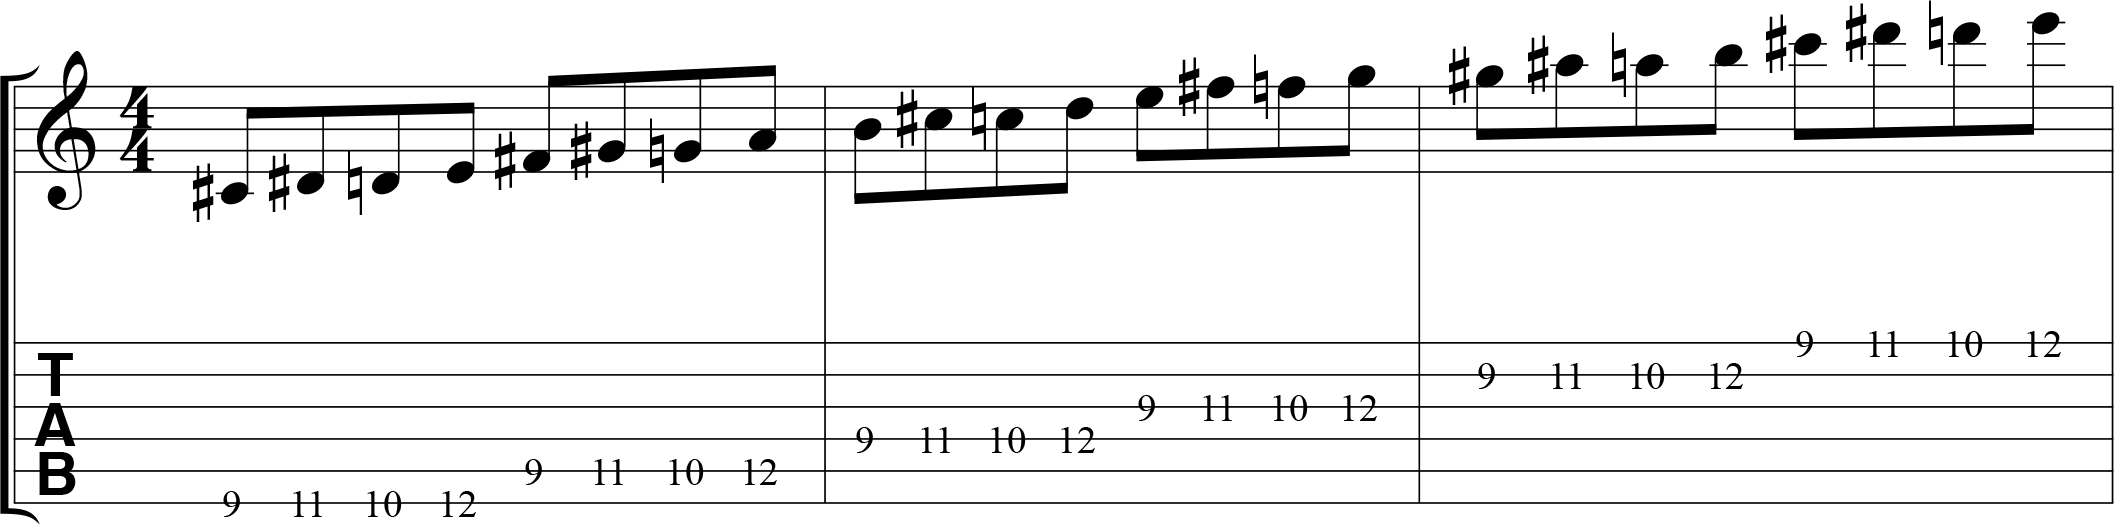 Chromatic alternate picking exercise for guitar, 1324, ascending.